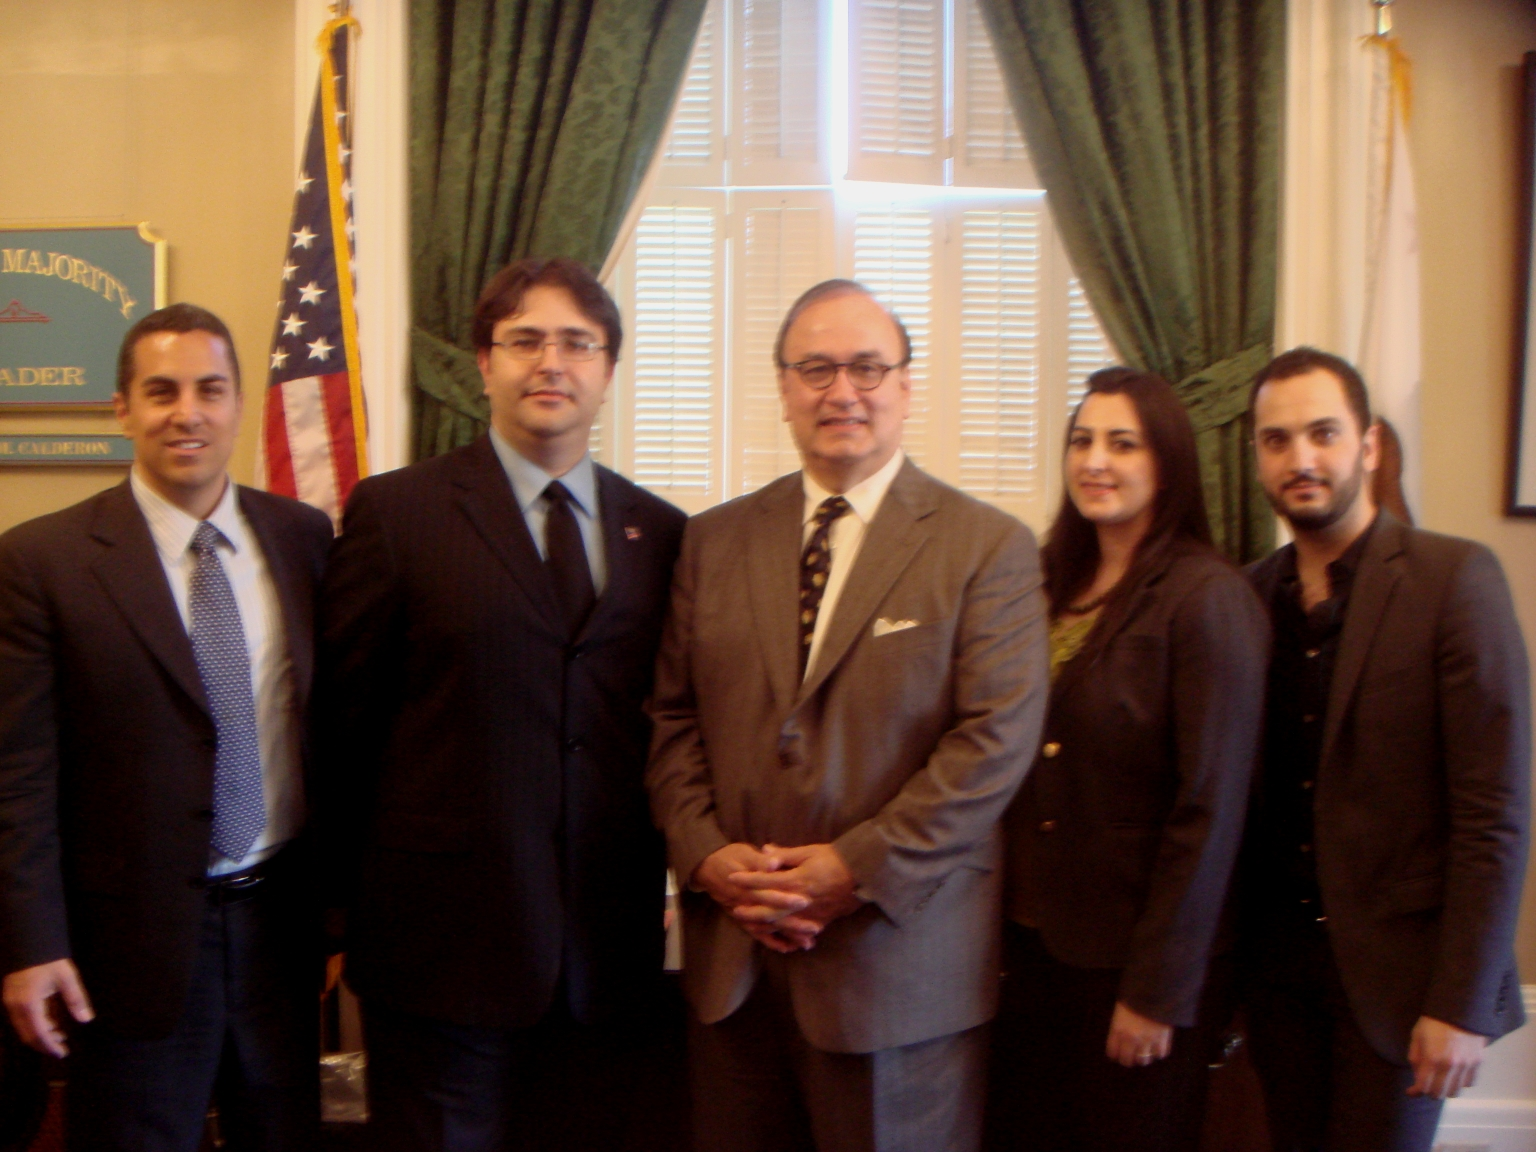 ACA members with California State Assembly Majority Leader Charles Calderon and Assistant Speaker Pro Tem Mike Gatto